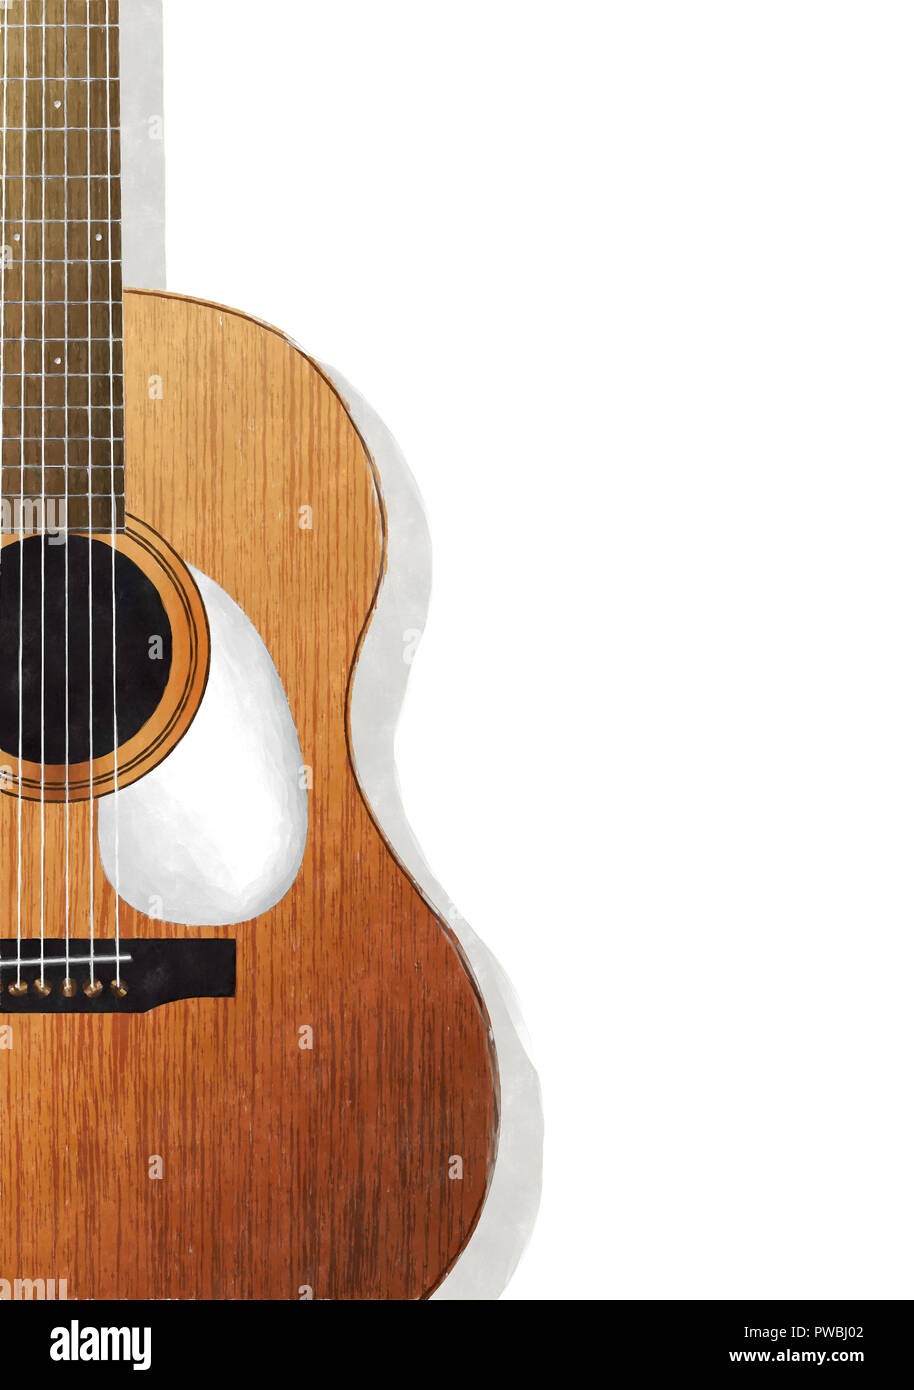 Watercolor acoustic guitar ocer white background - Stock Image